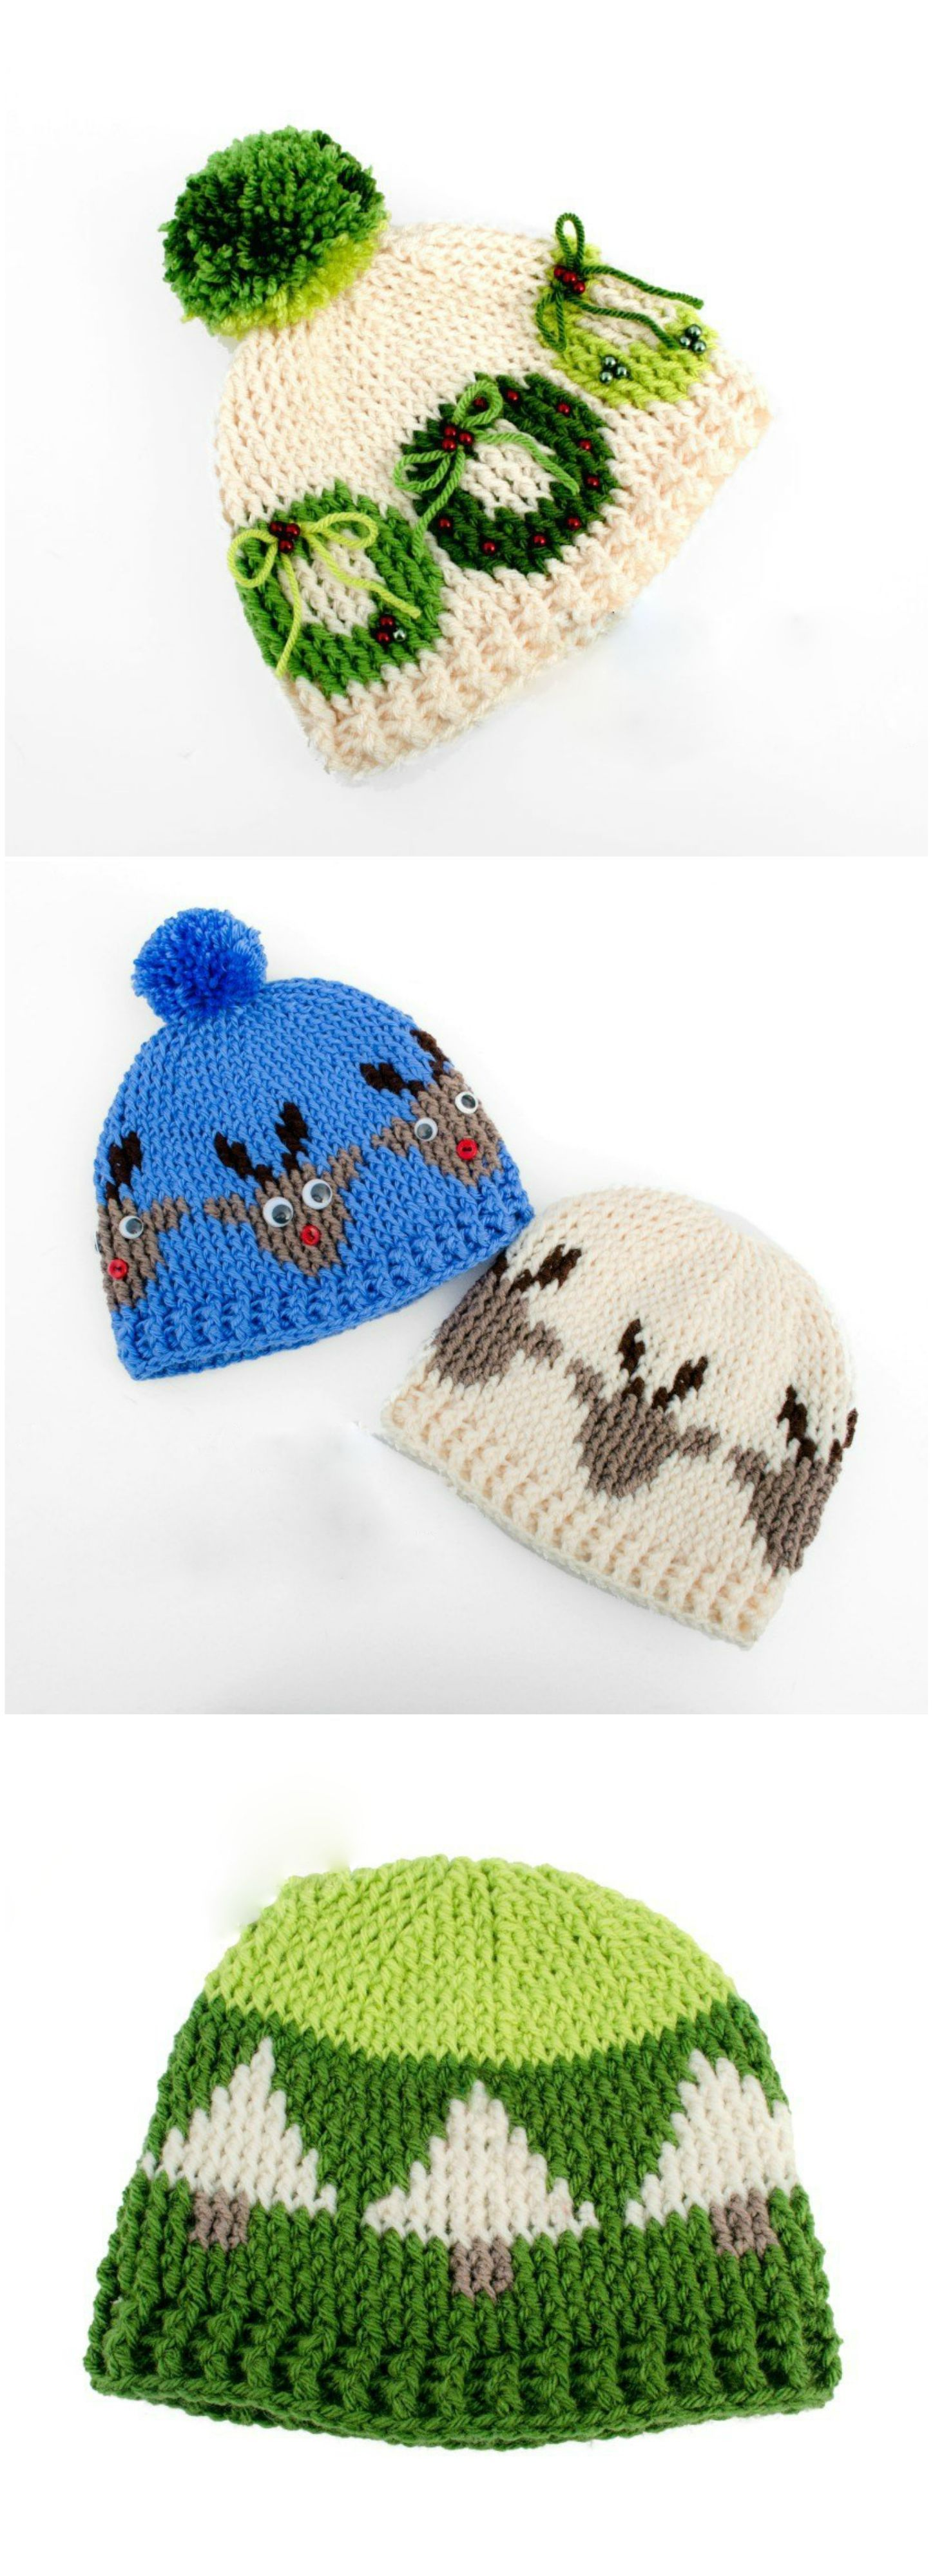 Graphic Christmas Hats – Craft Ideas | Gorros | Bufandas, Gorras y ...